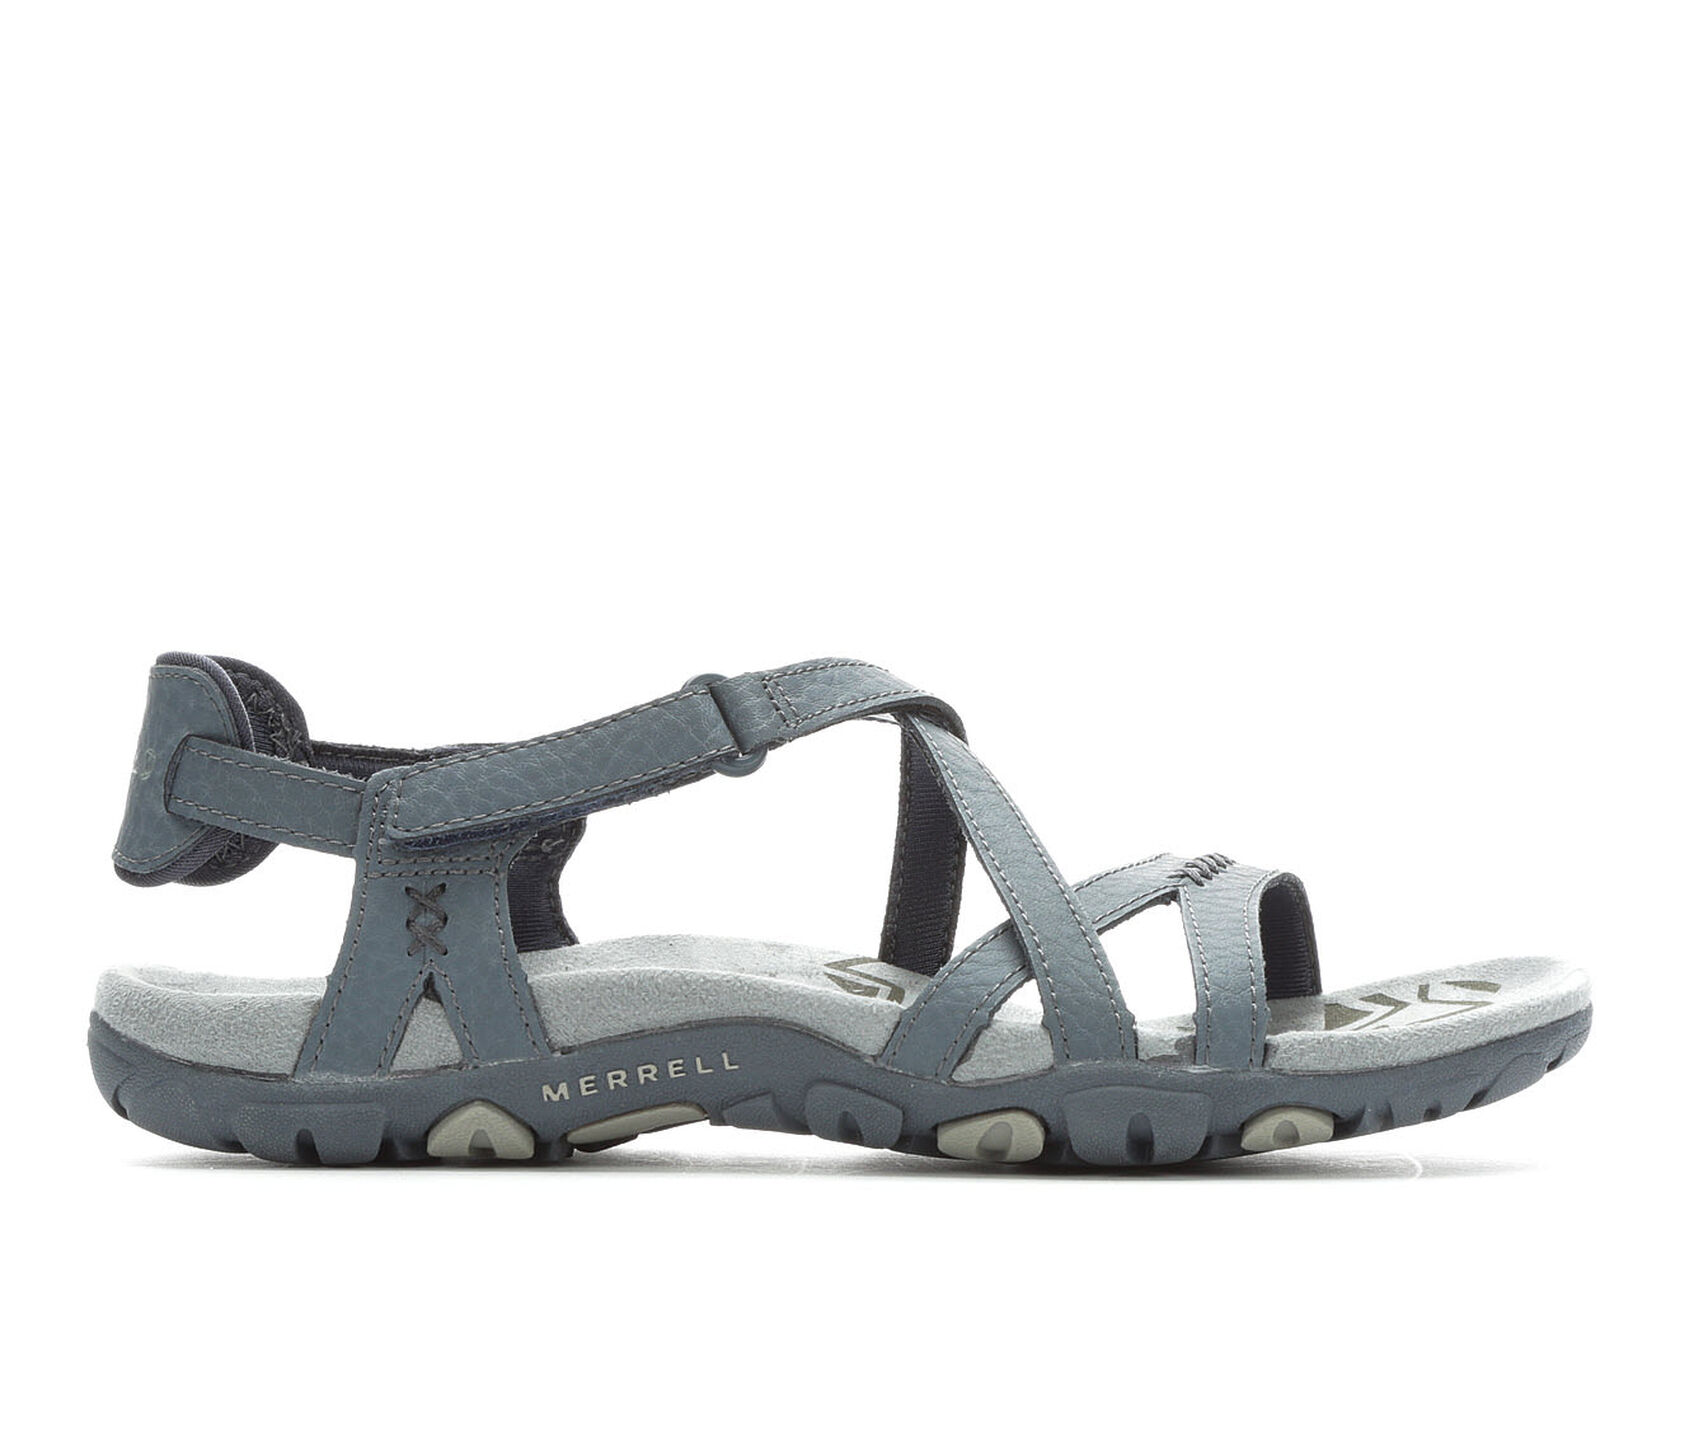 eec30b38168f71 Women  39 s Merrell Sandspur Rose Leather Outdoor Sandals. Carousel  Controls Previous